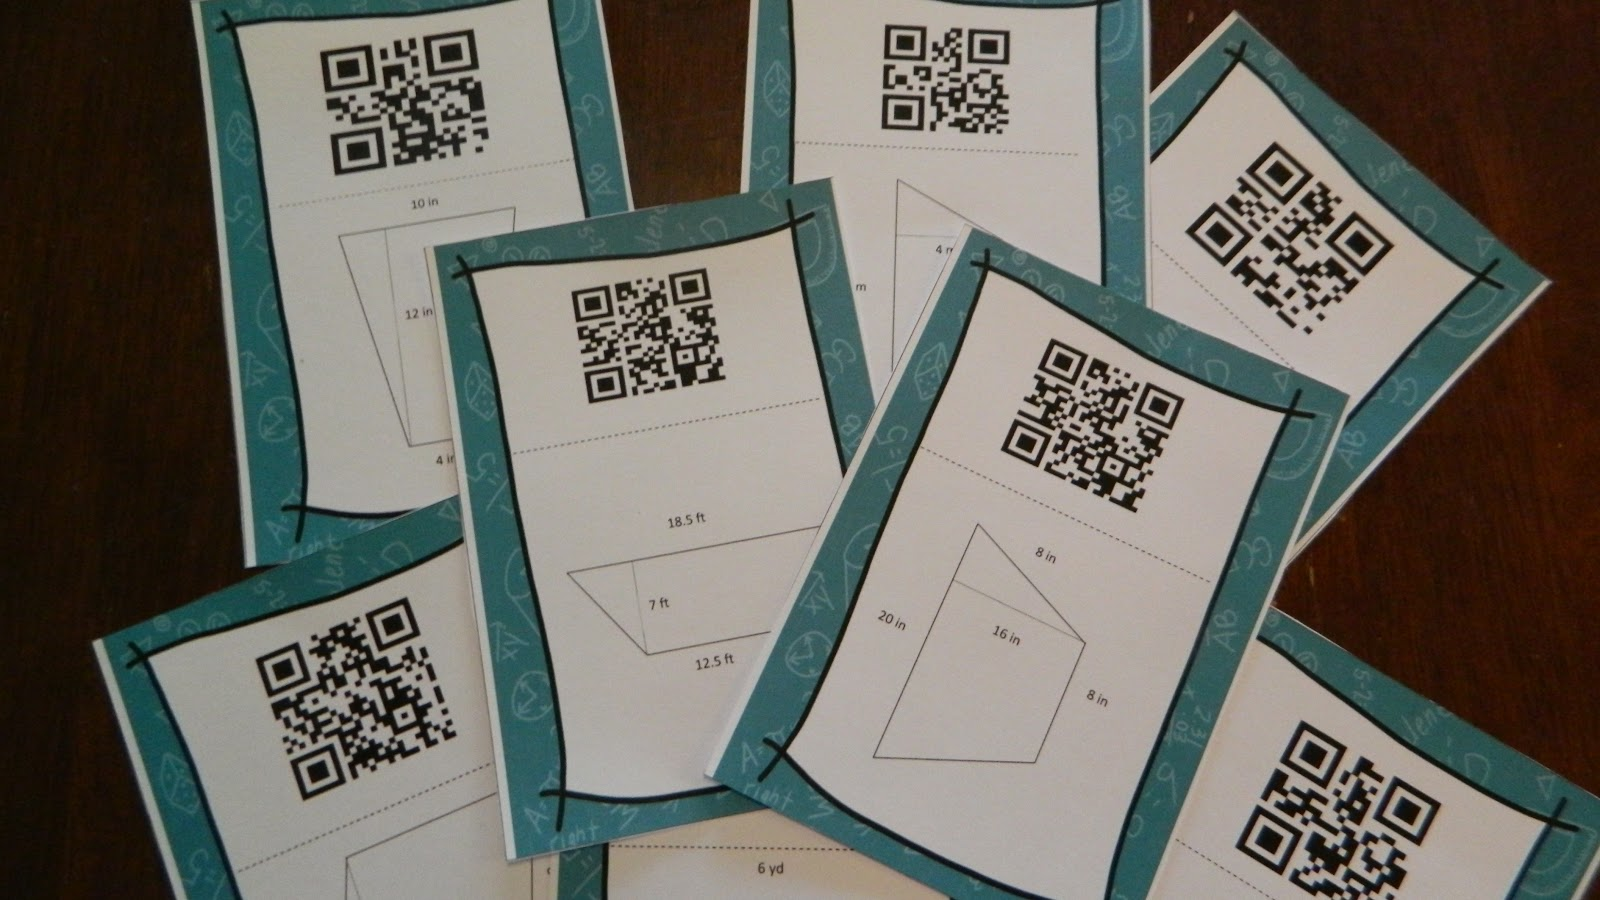 Using Qr Codes In Your Classroom It S Easier Than You Think